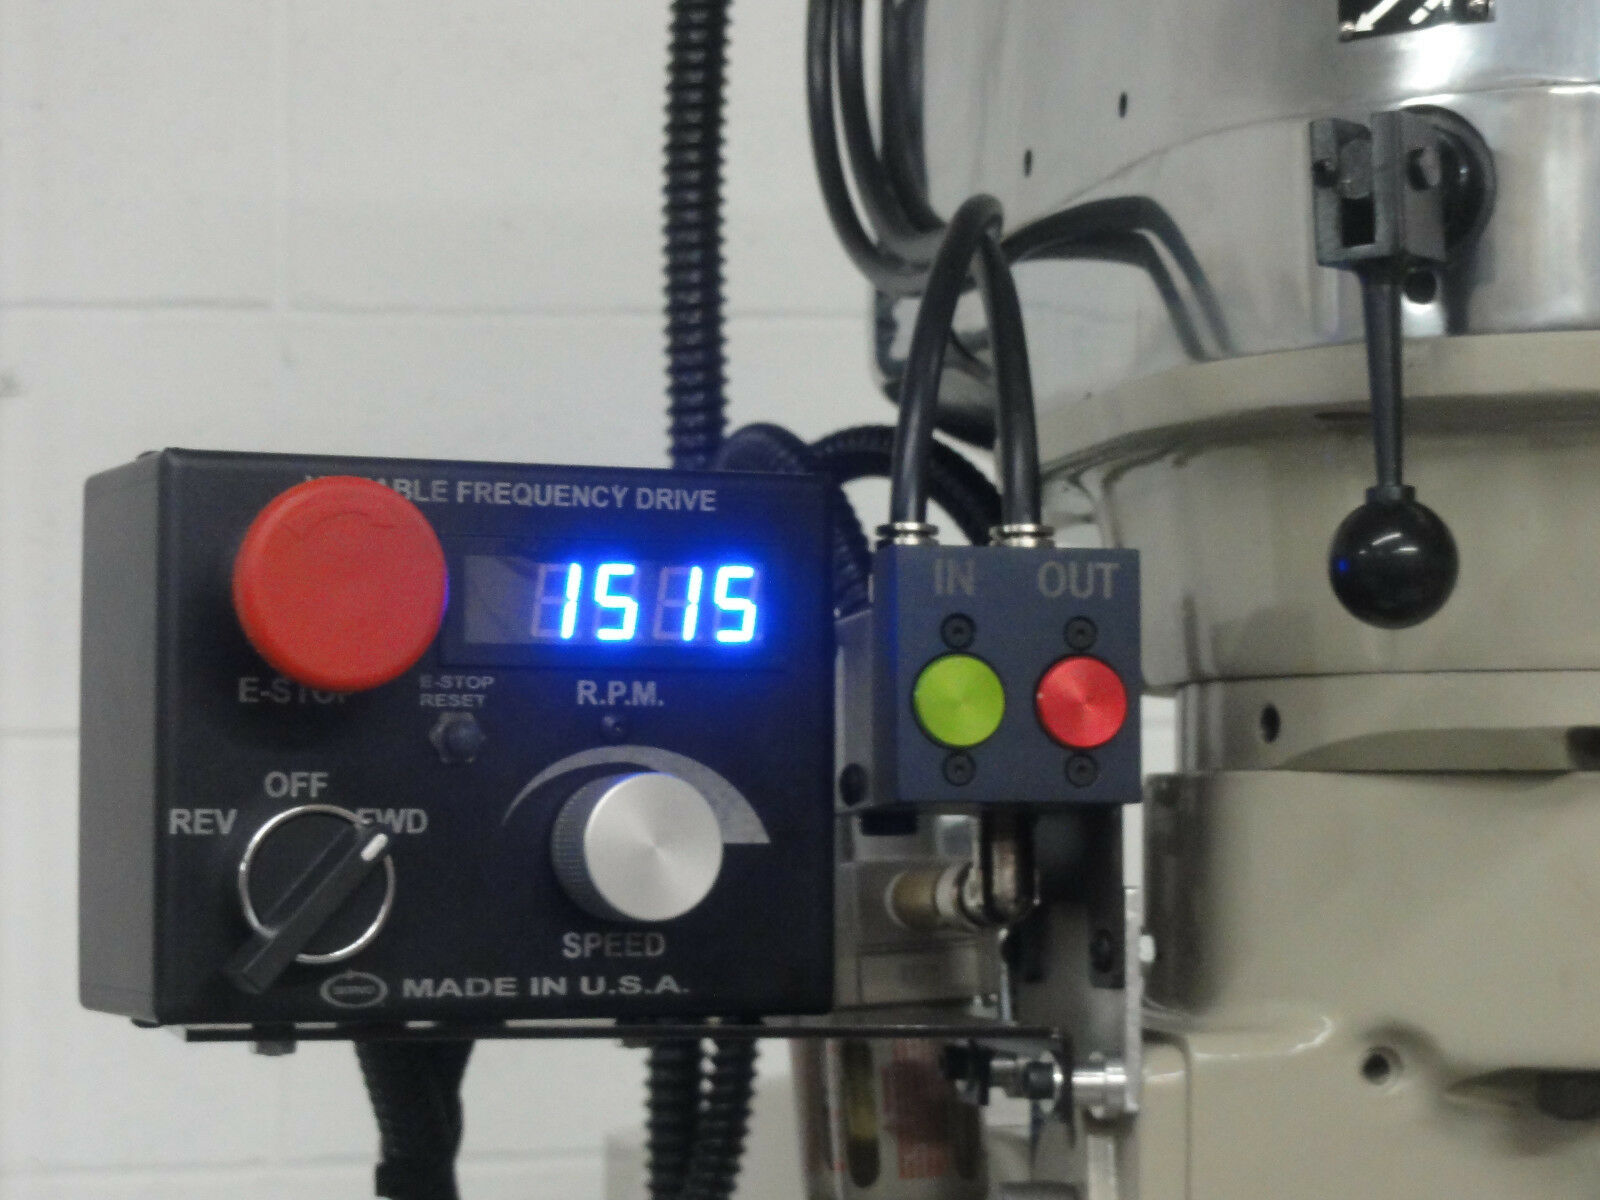 Groovy Servo Variable Frequency Drive Vfd 3 Hp 230V 1 Phase Bridgeport Mill Wiring Cloud Oideiuggs Outletorg